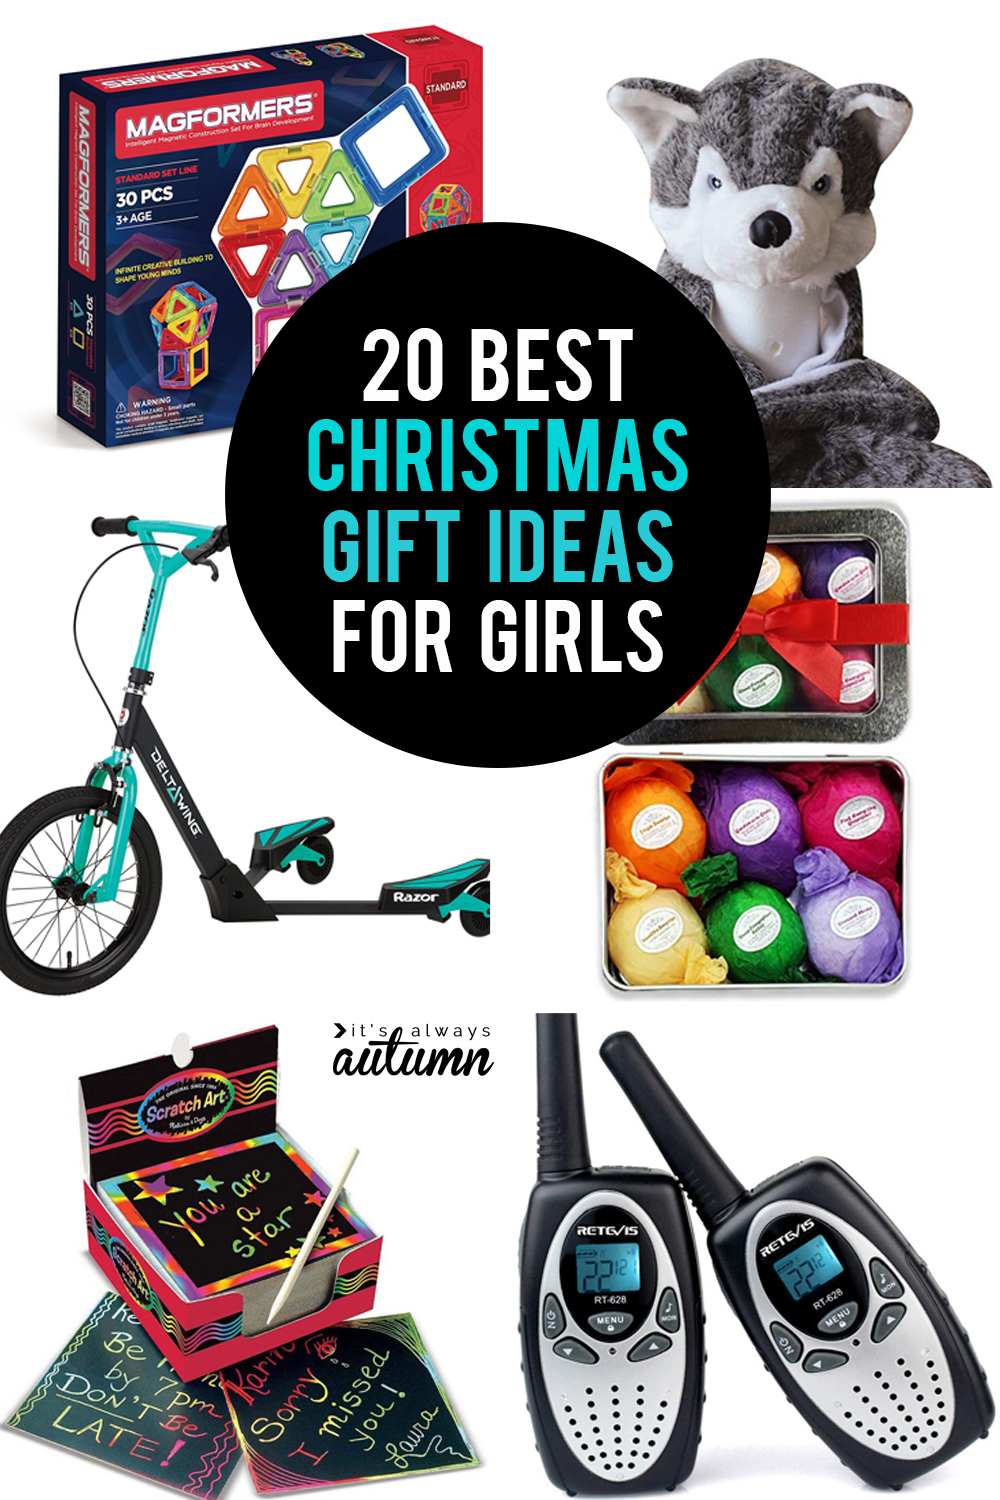 The 20 best Christmas gifts for girls! - It\'s Always Autumn